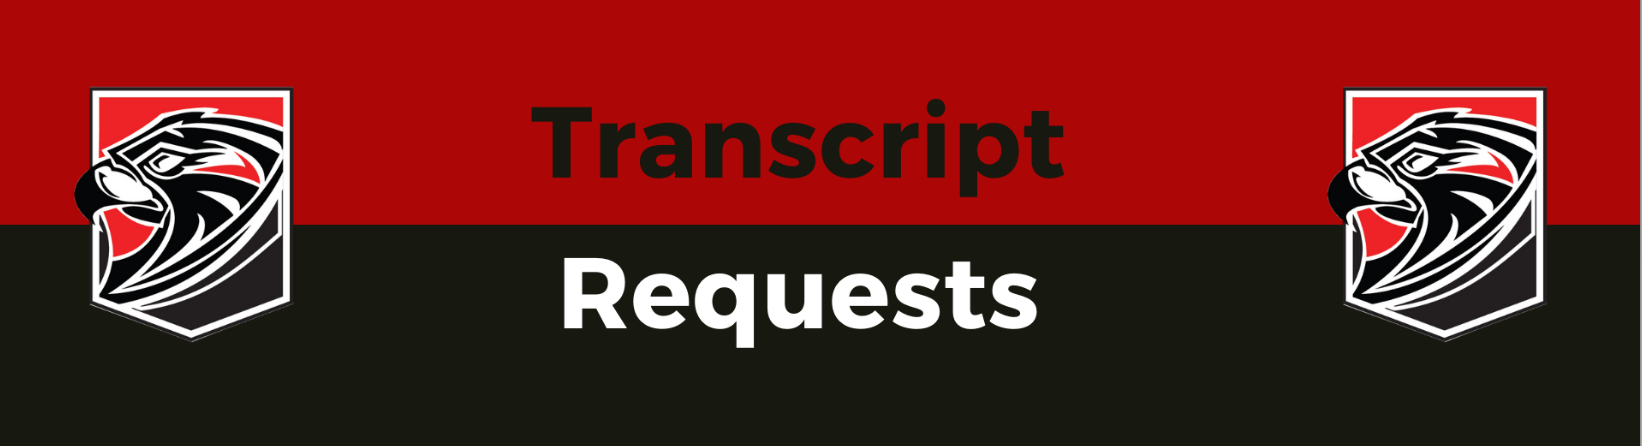 Transcript Request Link